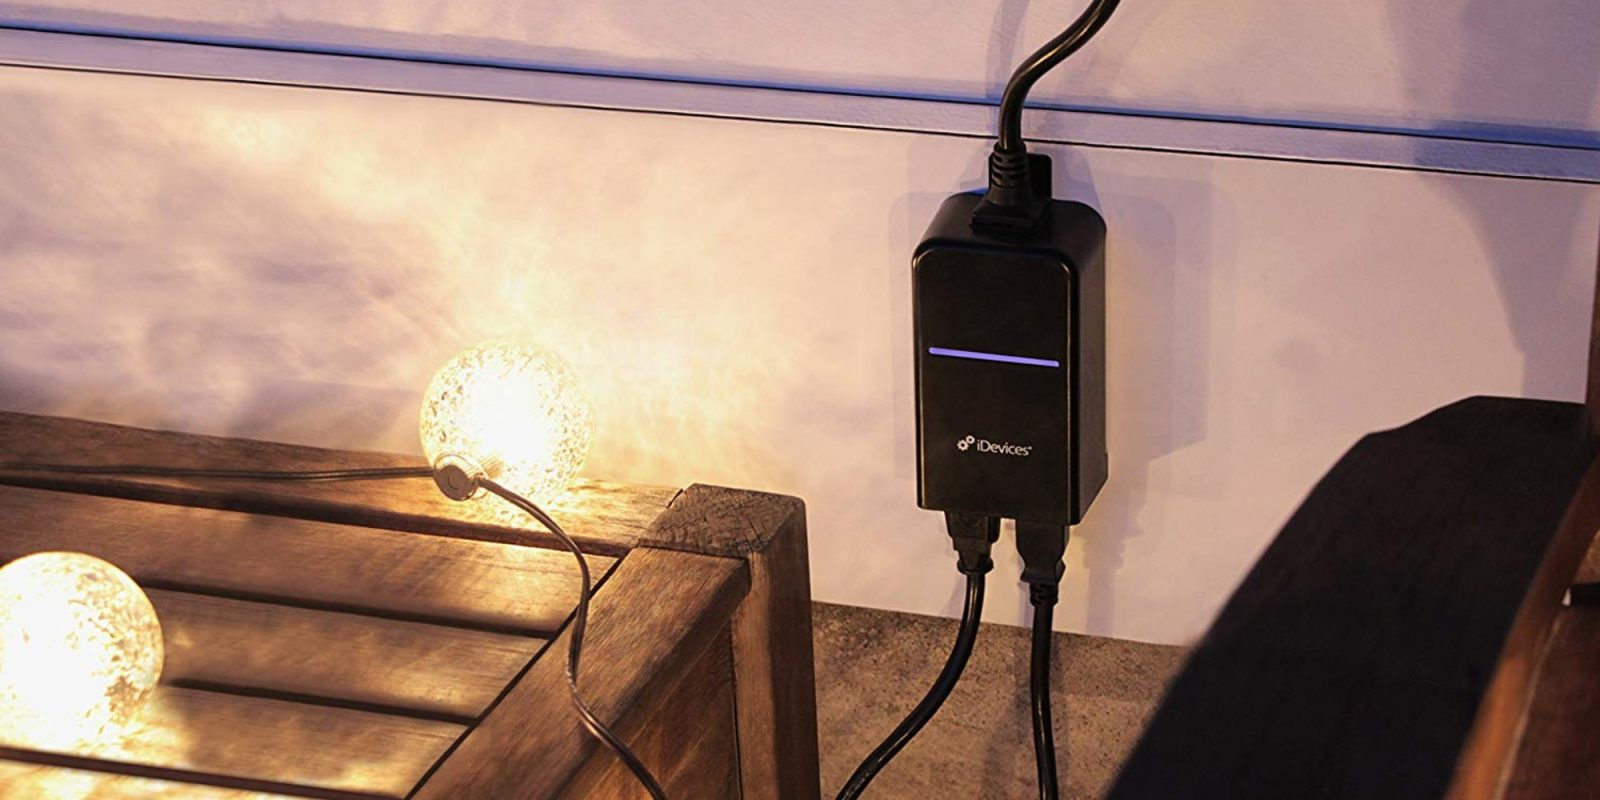 At 40% off, iDevices' $30 Outdoor HomeKit Smart Plug is a must-have